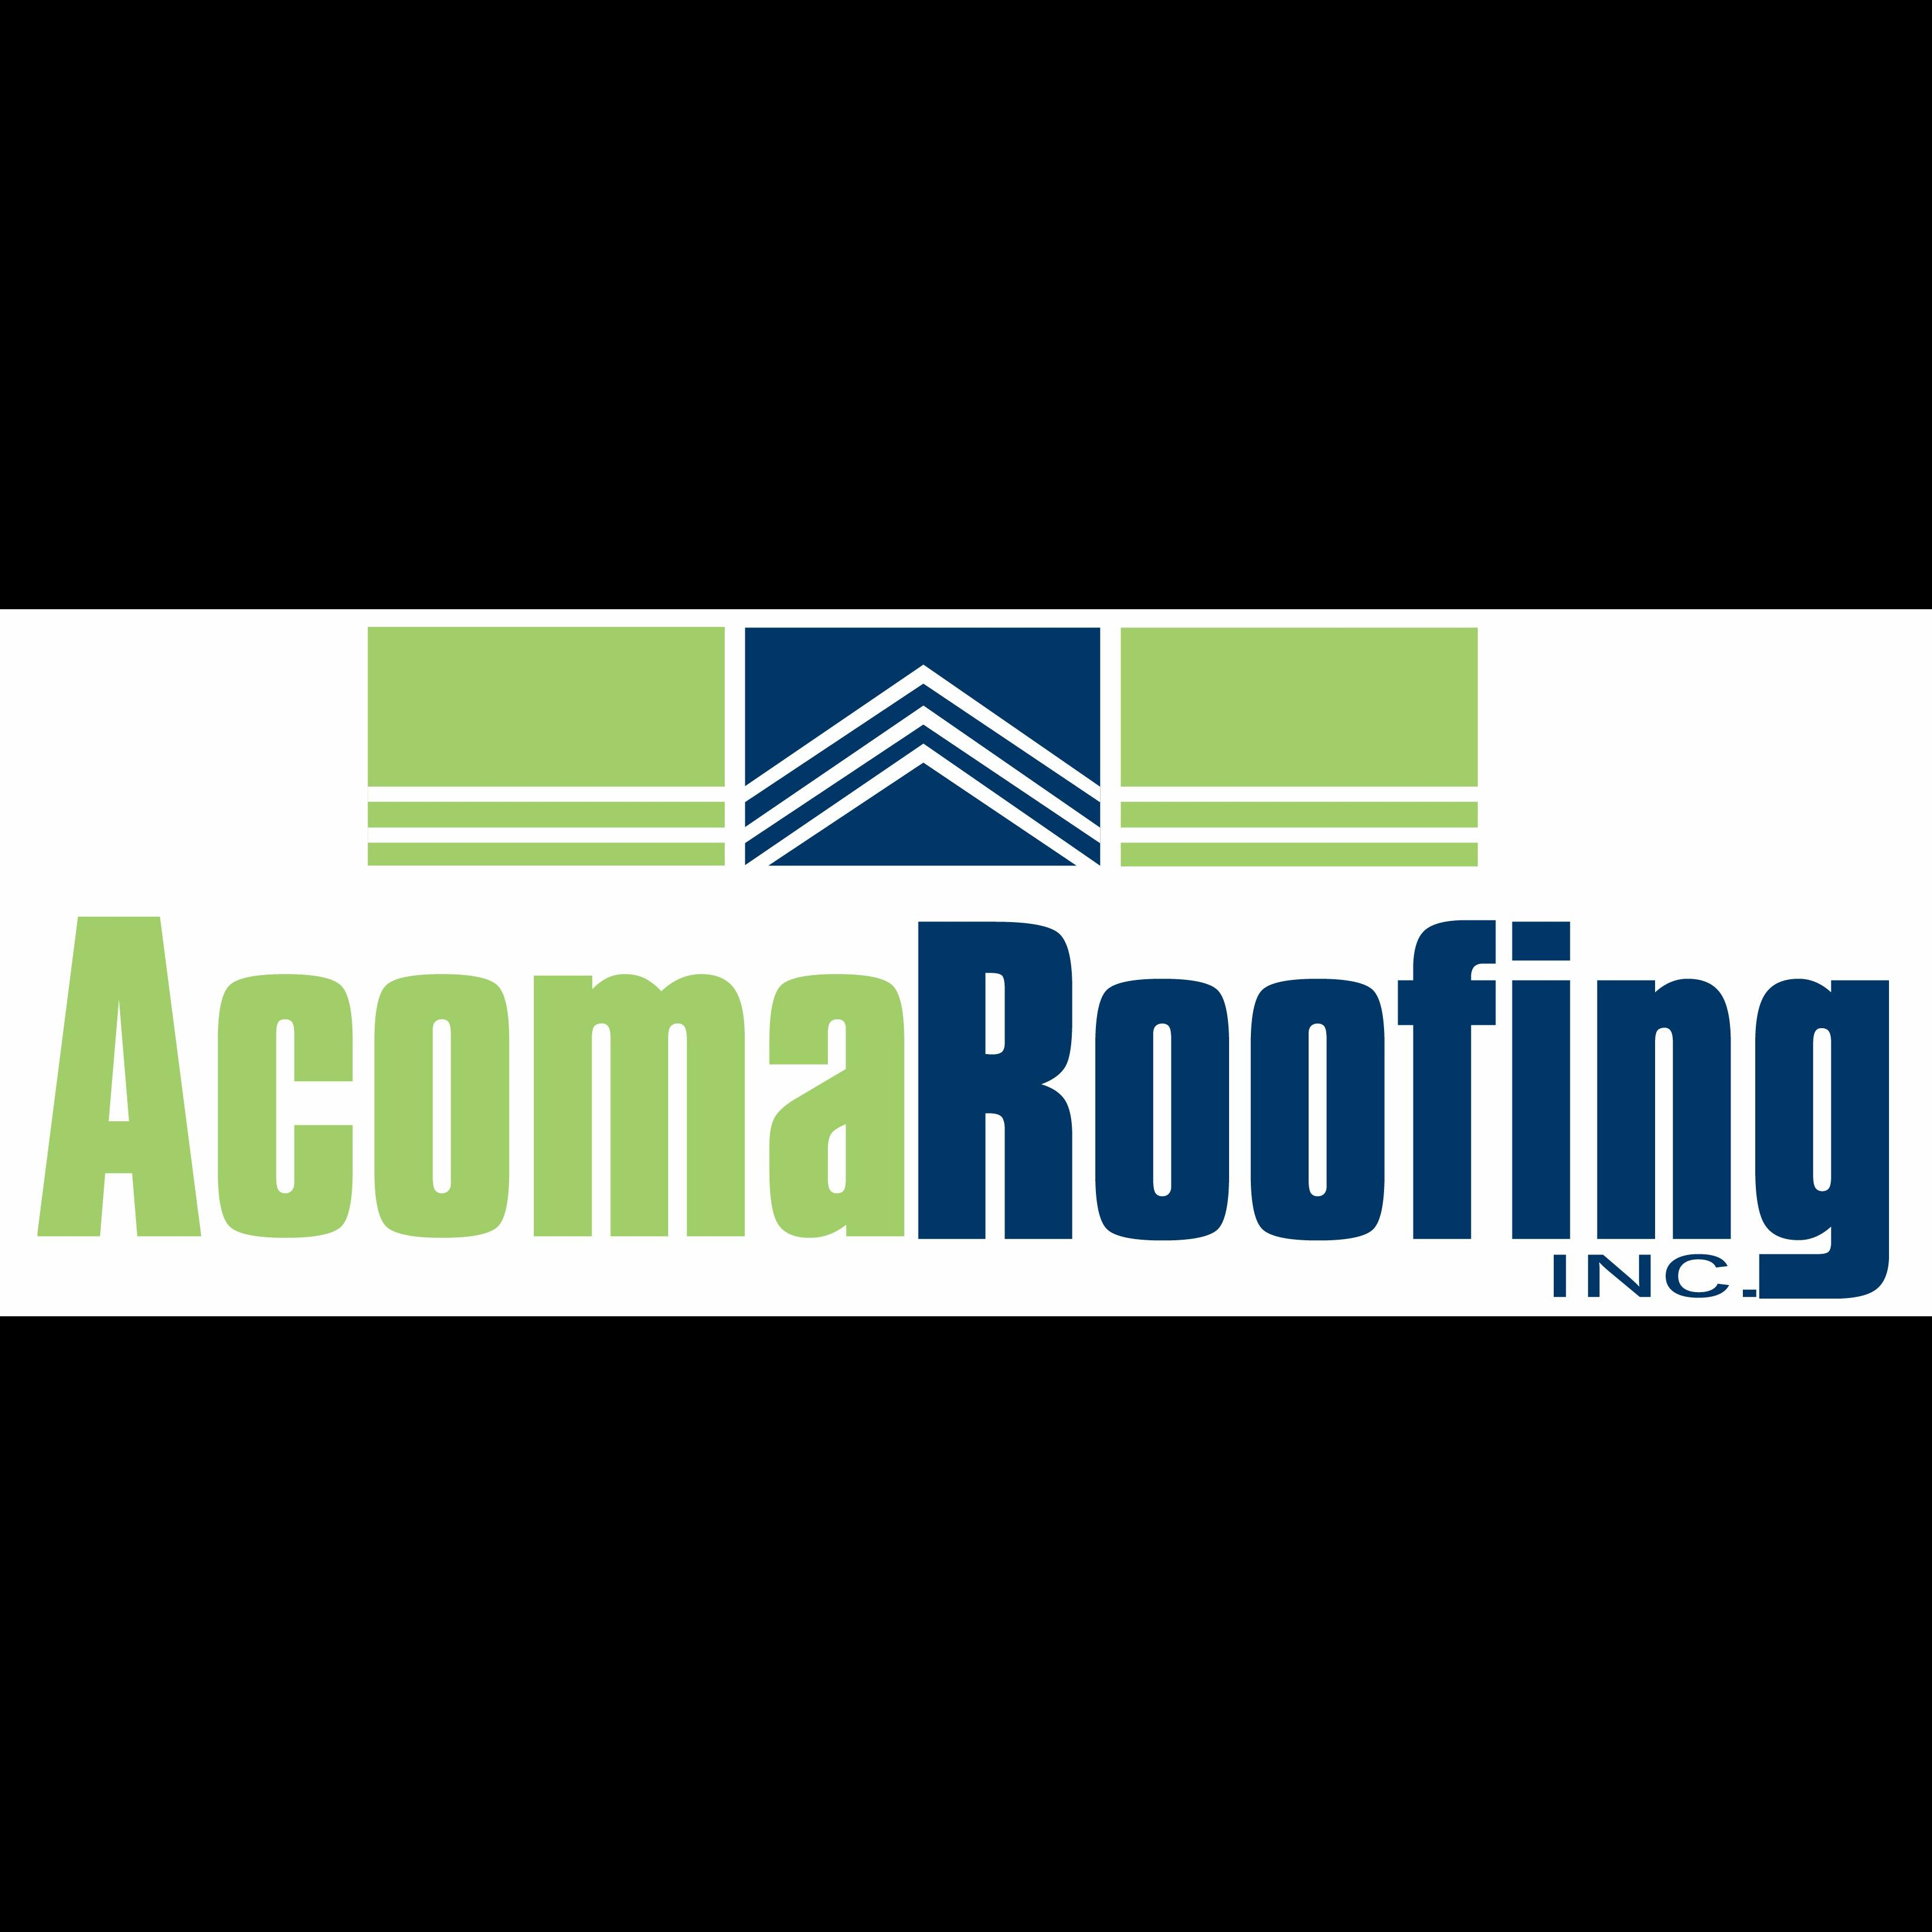 Acoma Roofing Inc.